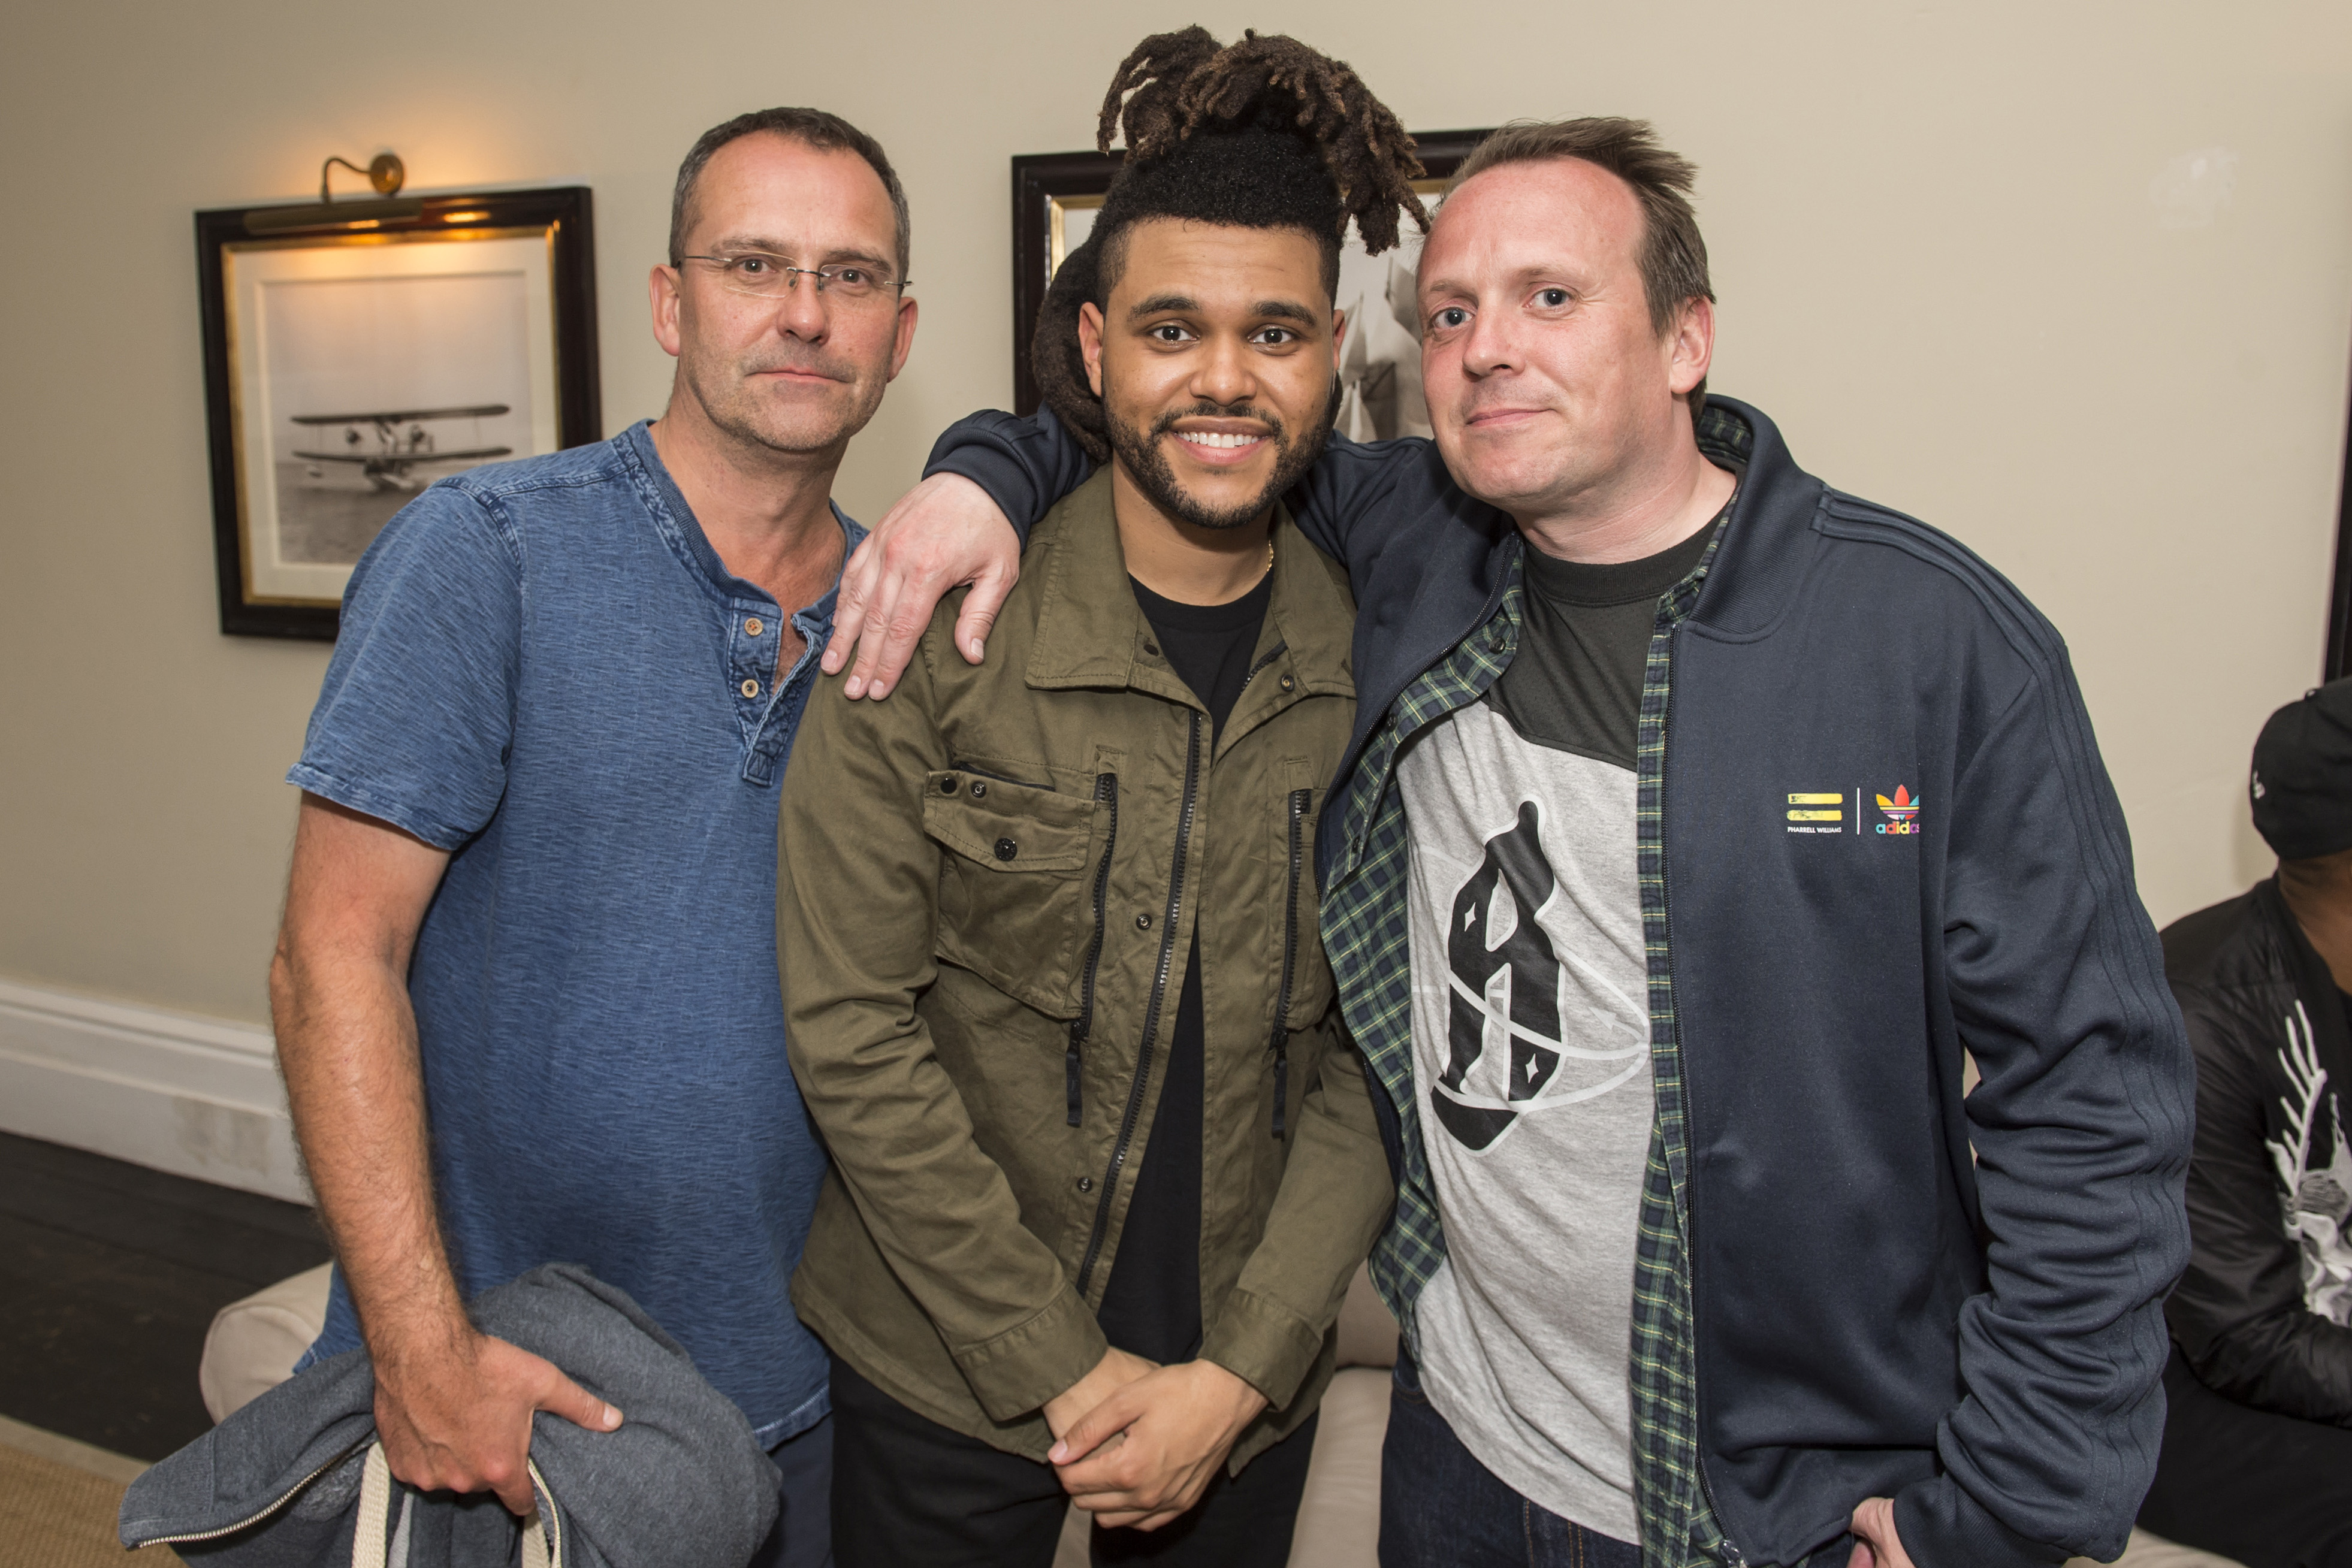 The Weeknd at Island Life 2015. Photo by: Carsten Windhorst / FRPAP.com